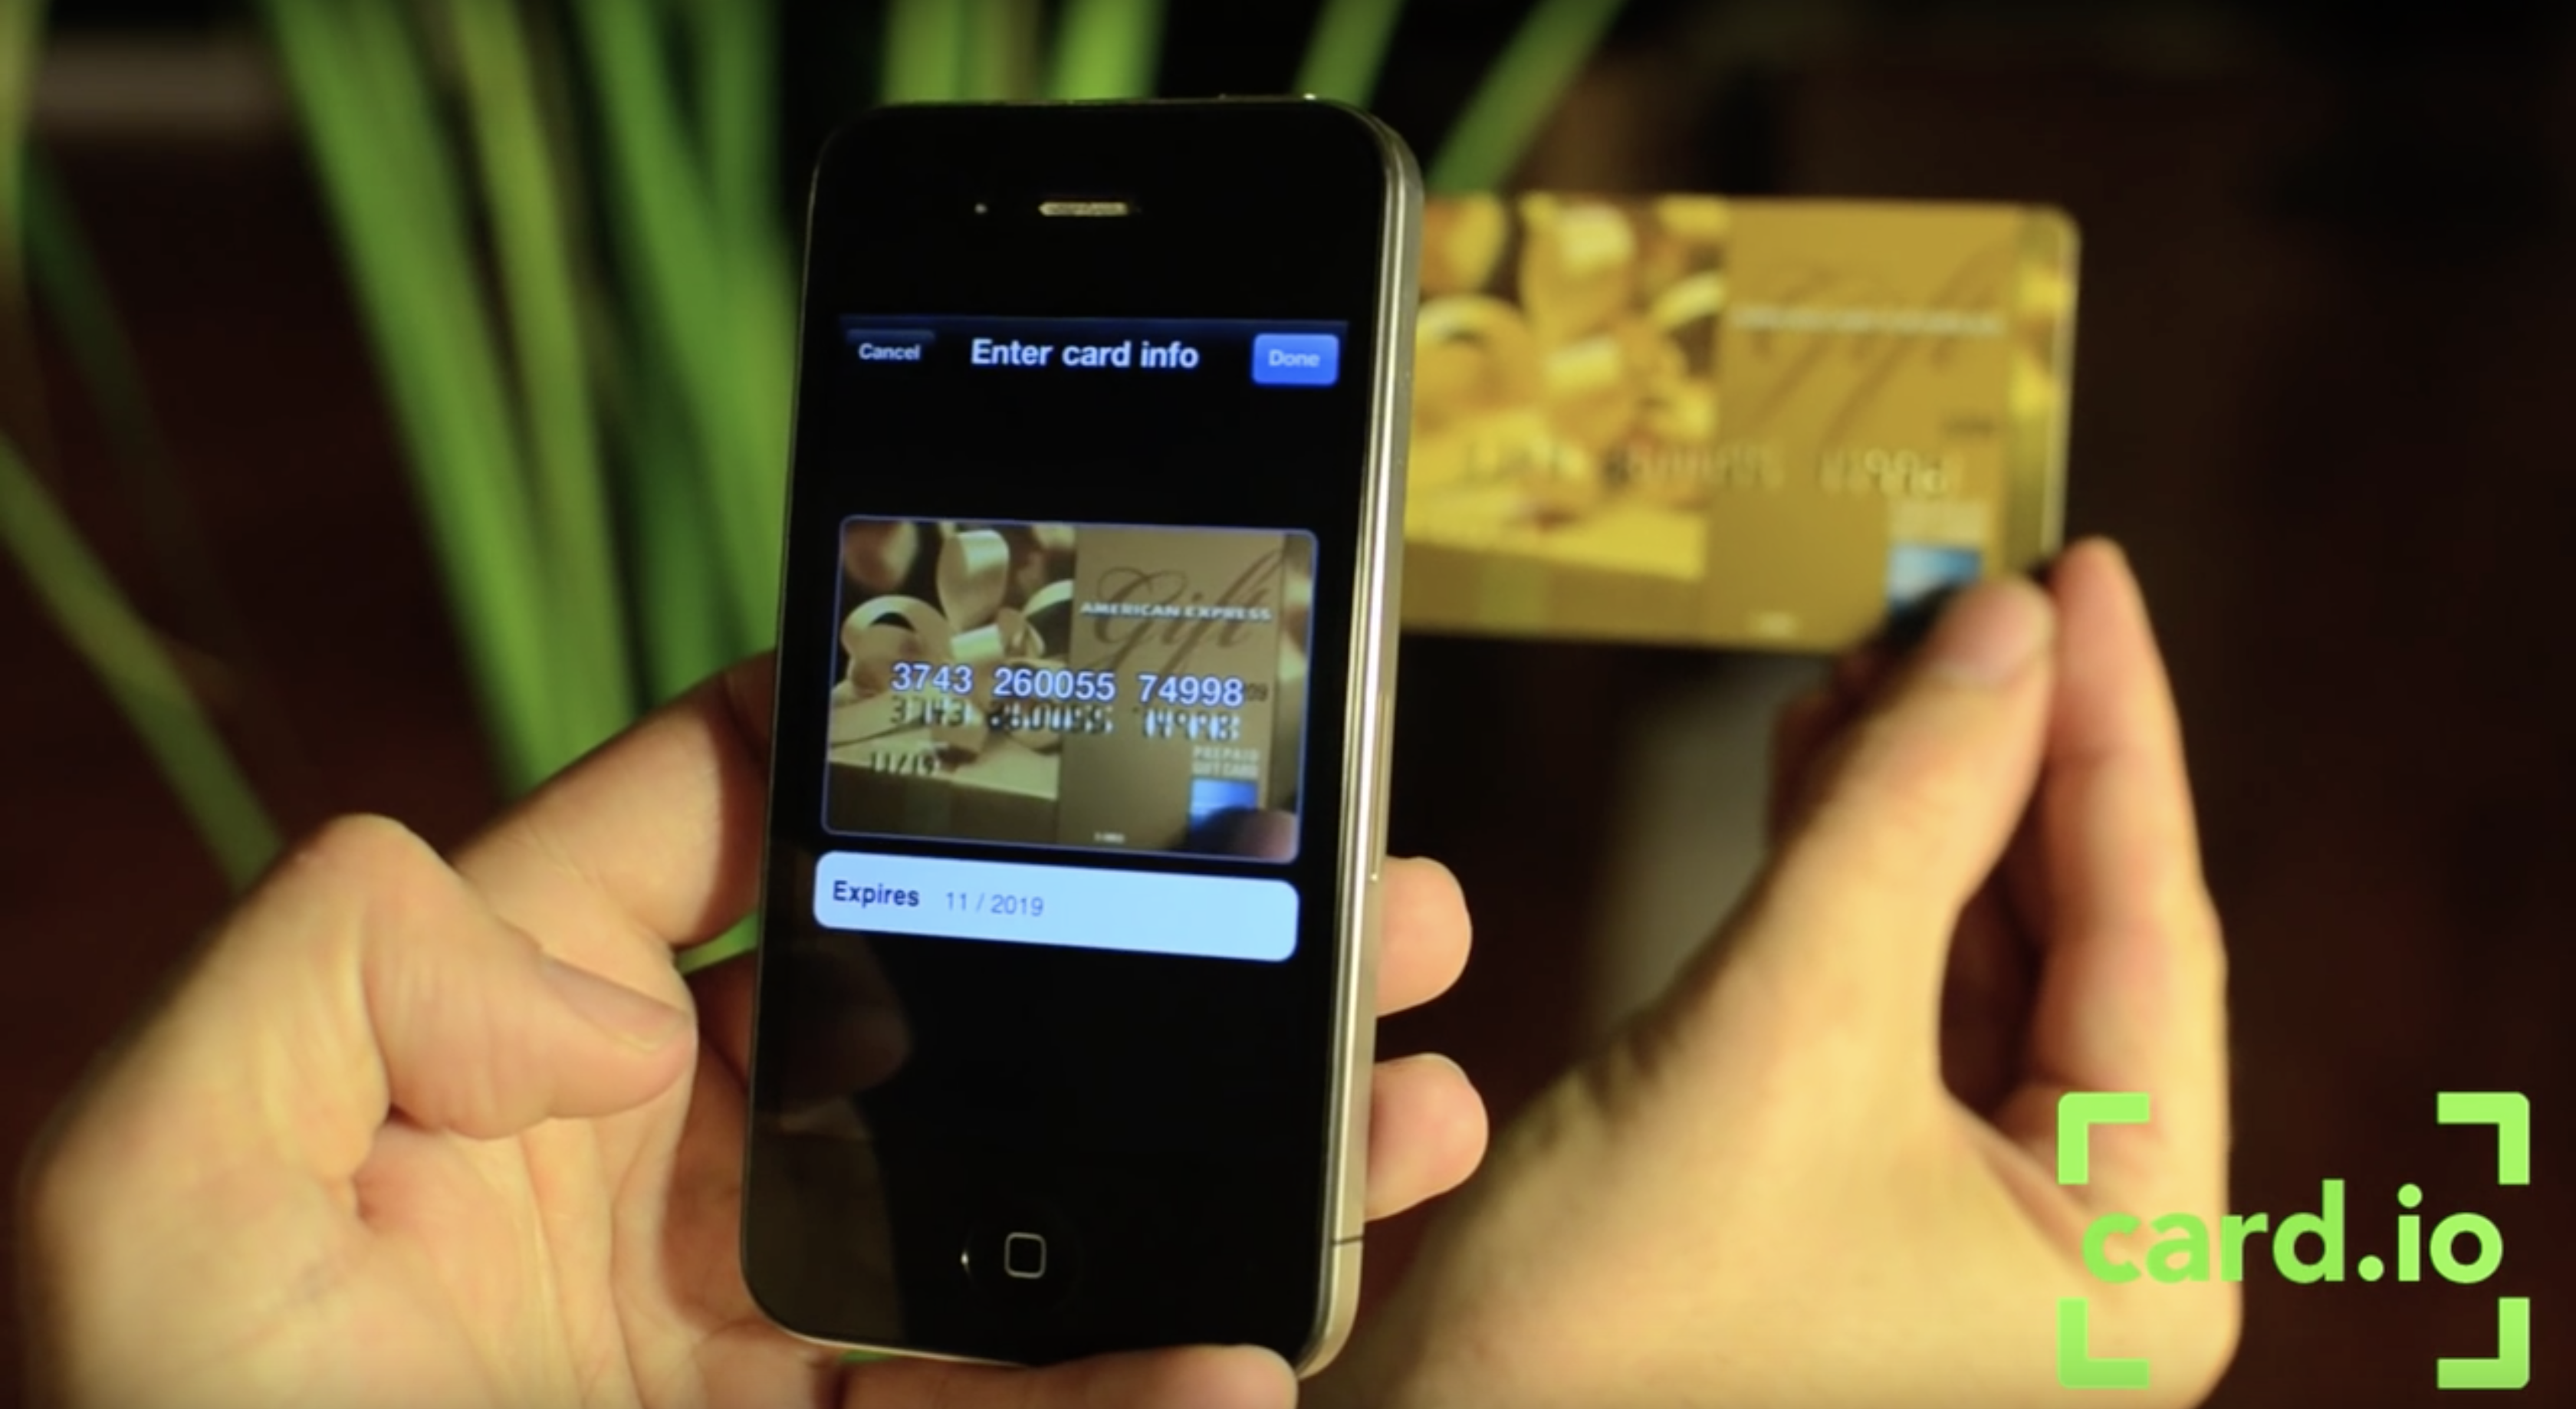 UX Design patterns for mobile apps_Card.io